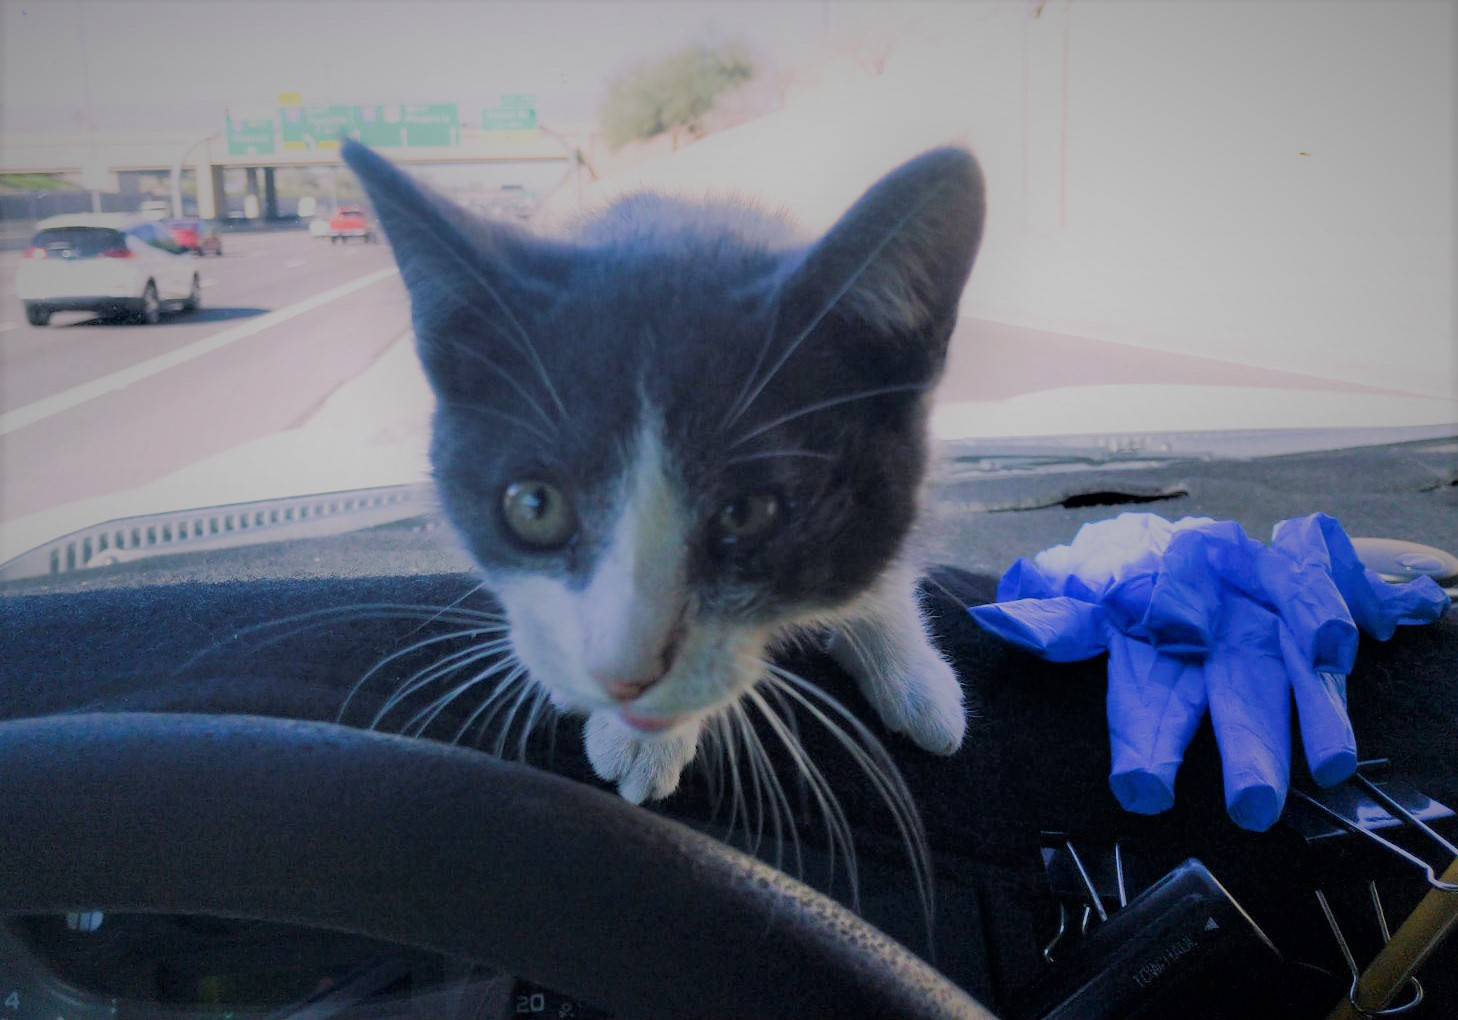 Millie finds new life thanks to ADOT